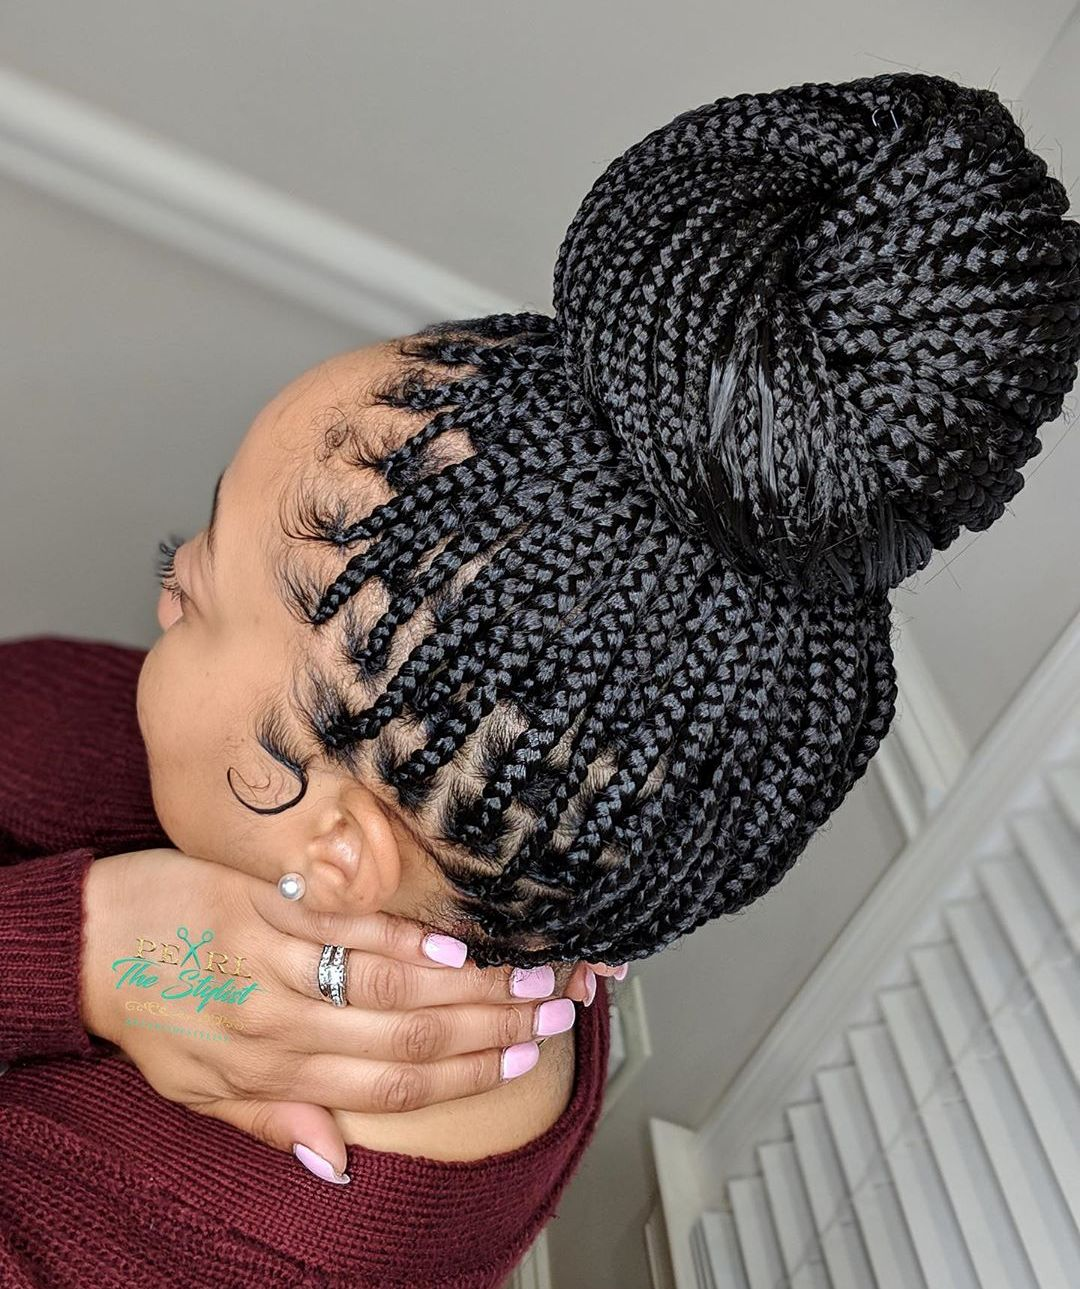 Small Braids in a High Bun